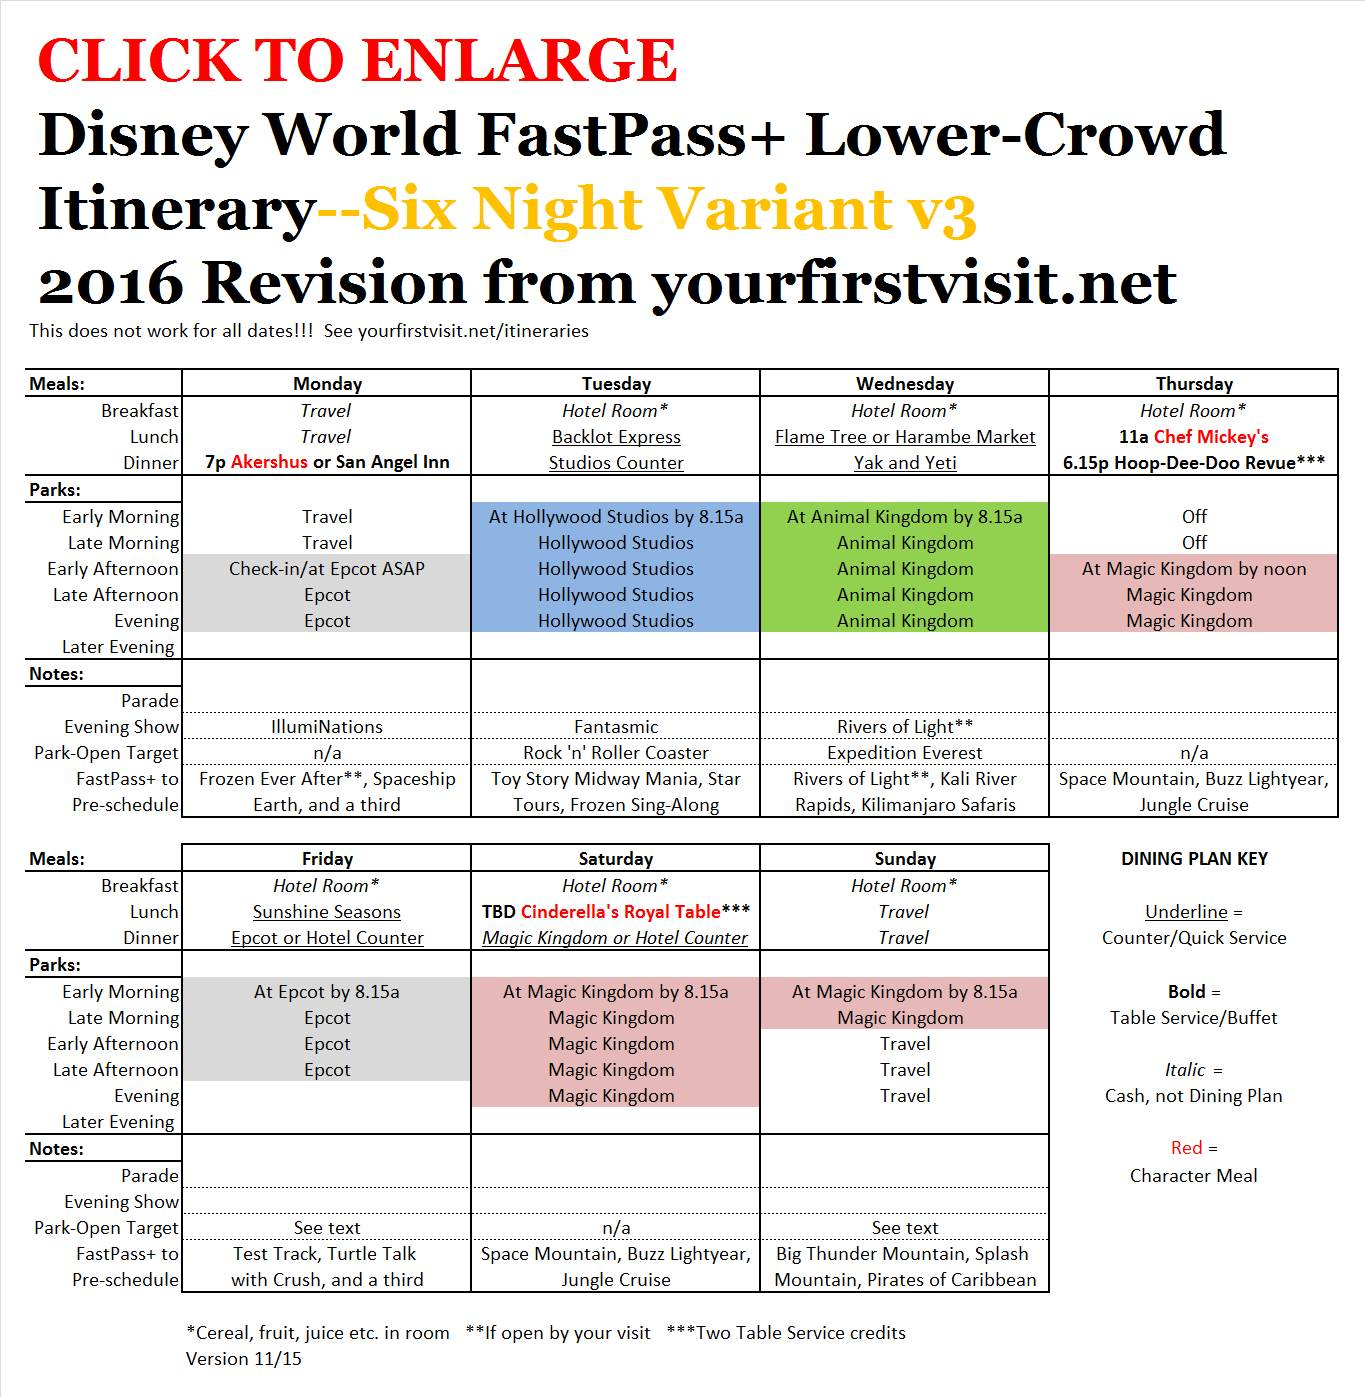 Disney World 2016 FastPass+ Lower Crowd Itinerary 6 Night Variant